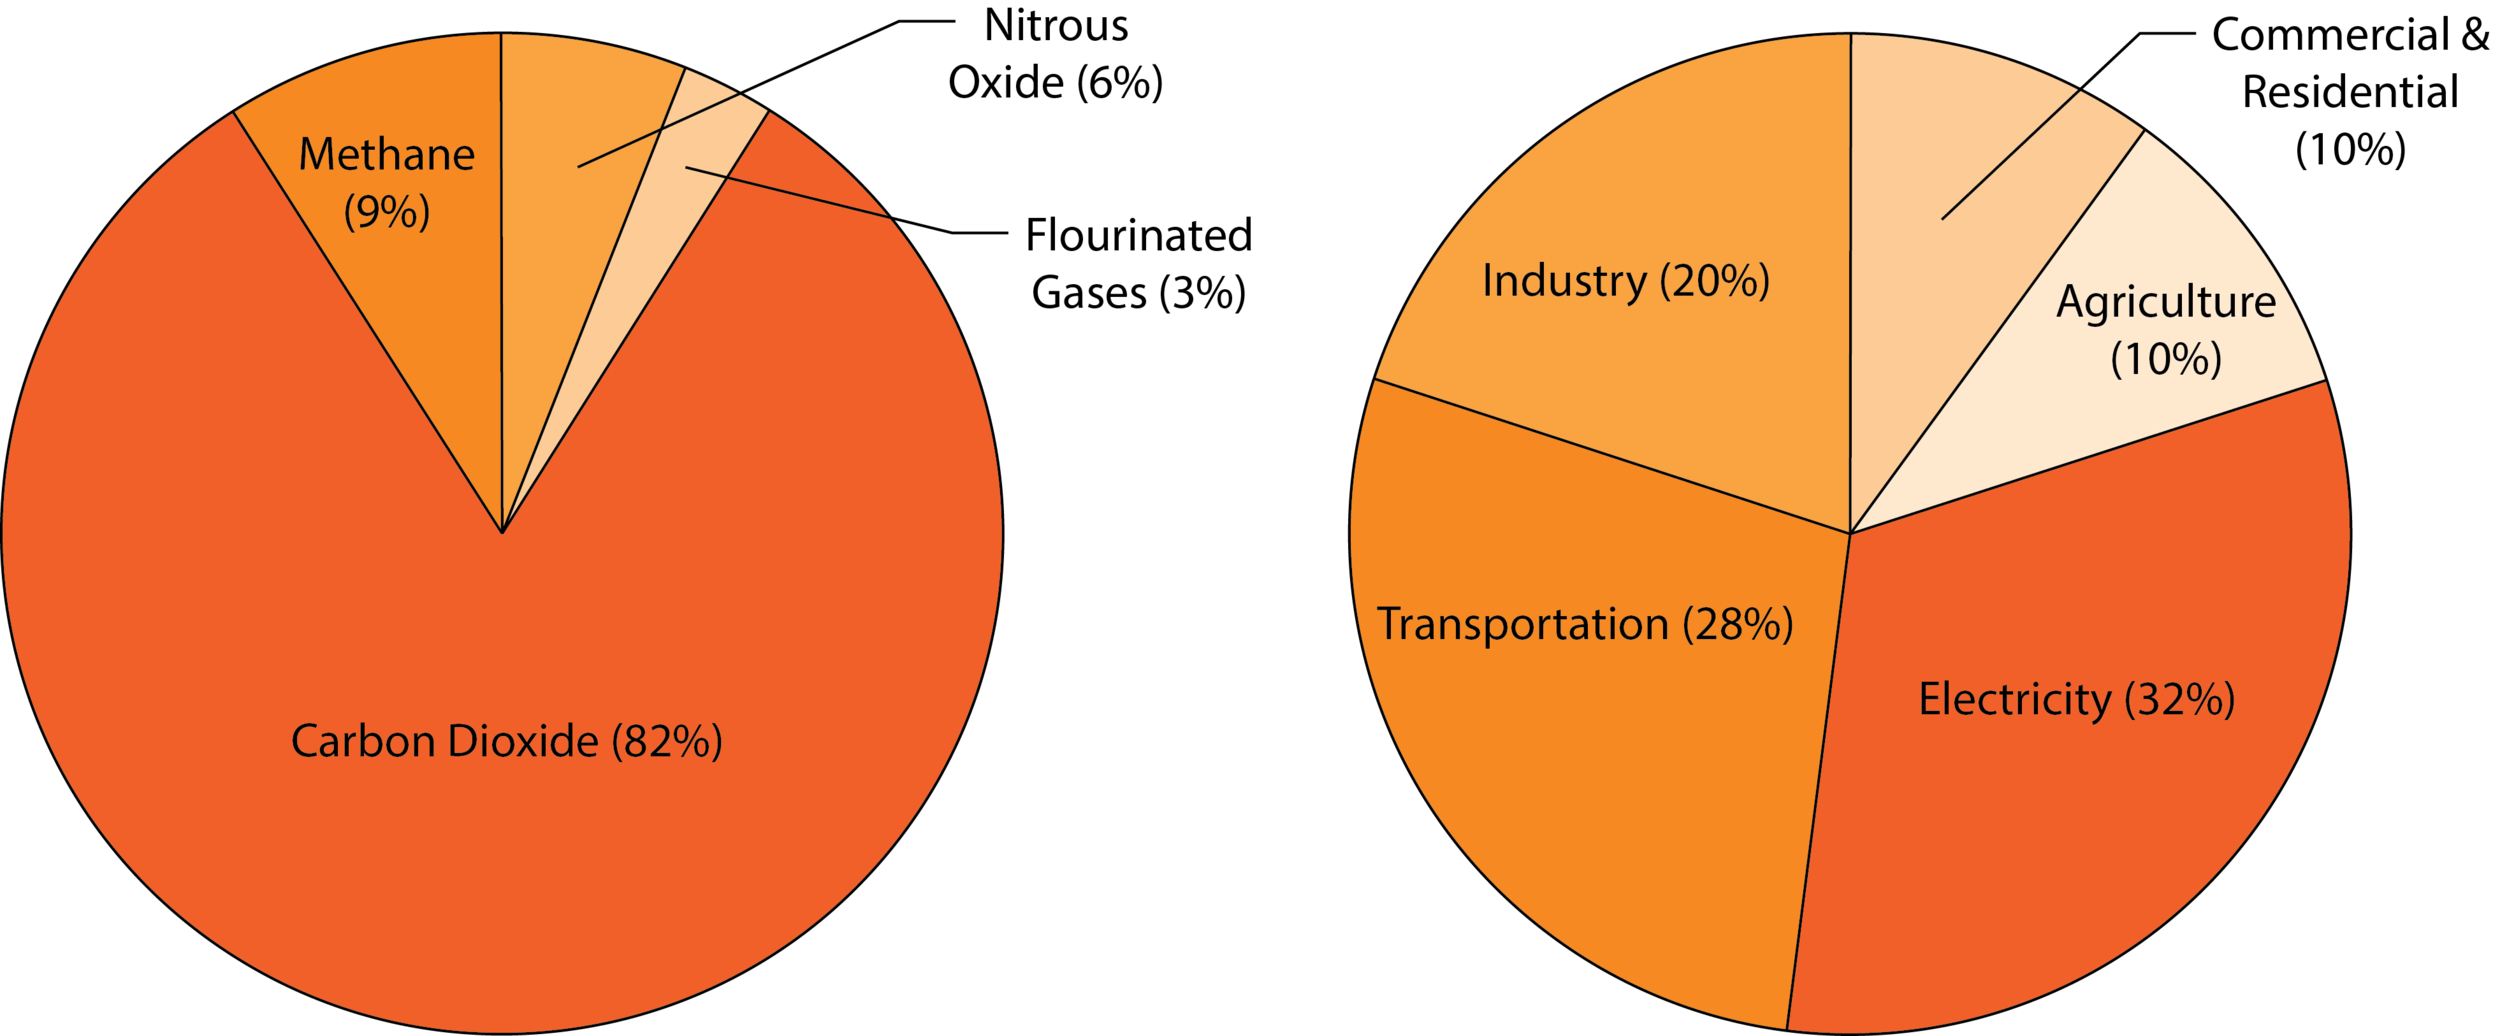 Carbon Emissions by Gas and by Type. Reducing carbon emissions in transportation and electricity is needed and provided through smart design decisions in the built environment.